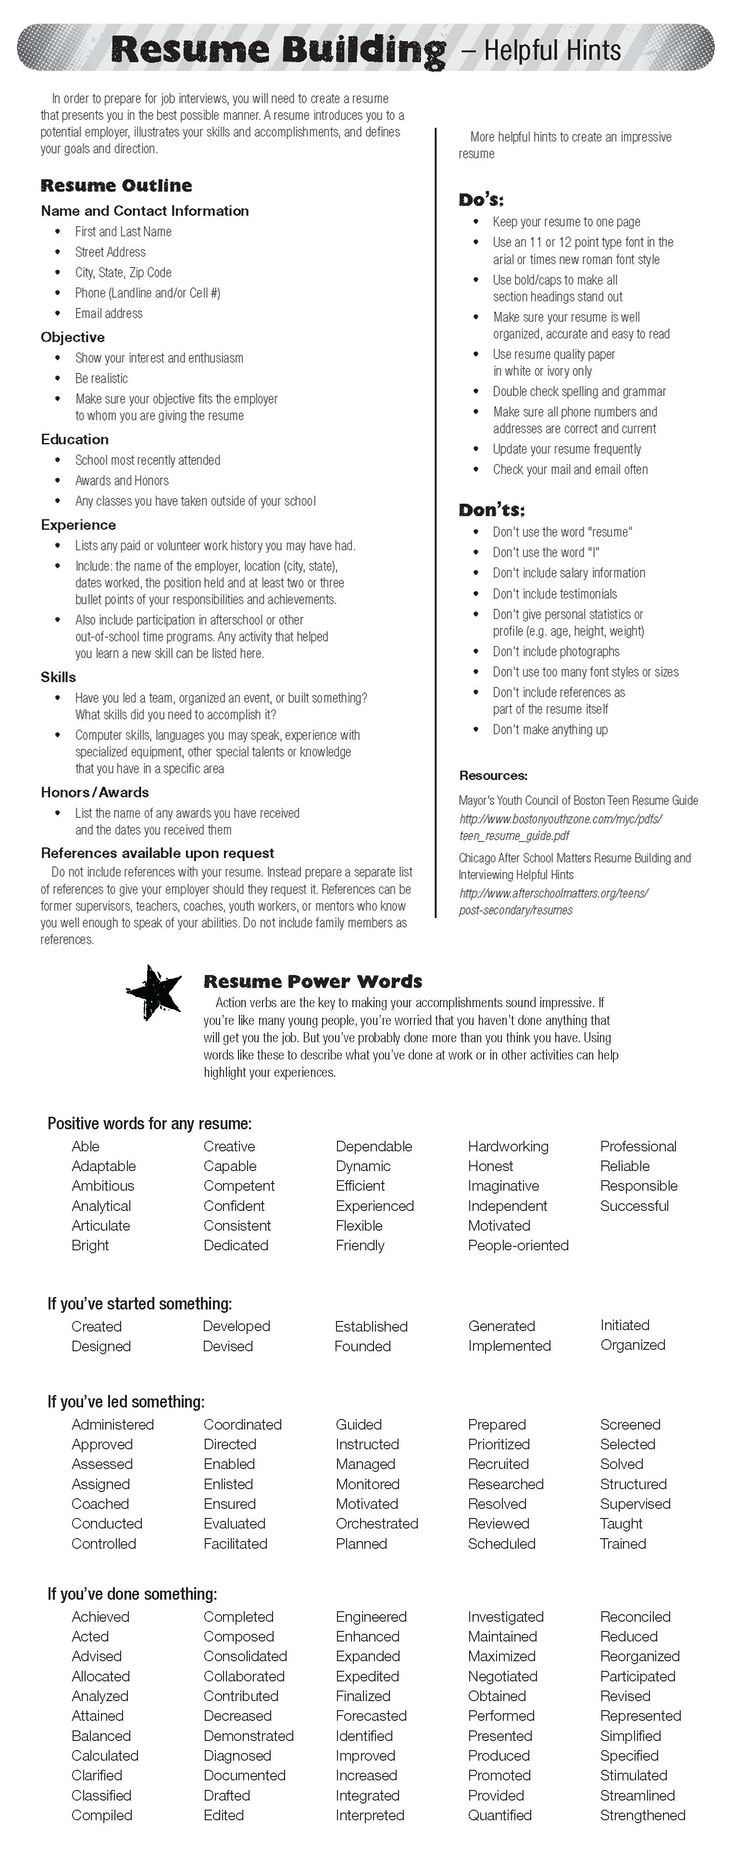 Opposenewapstandardsus  Splendid  Ideas About Resume On Pinterest  Cv Format Resume Cv And  With Gorgeous  Ideas About Resume On Pinterest  Cv Format Resume Cv And Resume Templates With Easy On The Eye Entry Level Engineering Resume Also Resume Templates Pages In Addition Resume Key Skills And Career Objective Resume Examples As Well As Illustrator Resume Templates Additionally Marketing Resume Templates From Pinterestcom With Opposenewapstandardsus  Gorgeous  Ideas About Resume On Pinterest  Cv Format Resume Cv And  With Easy On The Eye  Ideas About Resume On Pinterest  Cv Format Resume Cv And Resume Templates And Splendid Entry Level Engineering Resume Also Resume Templates Pages In Addition Resume Key Skills From Pinterestcom